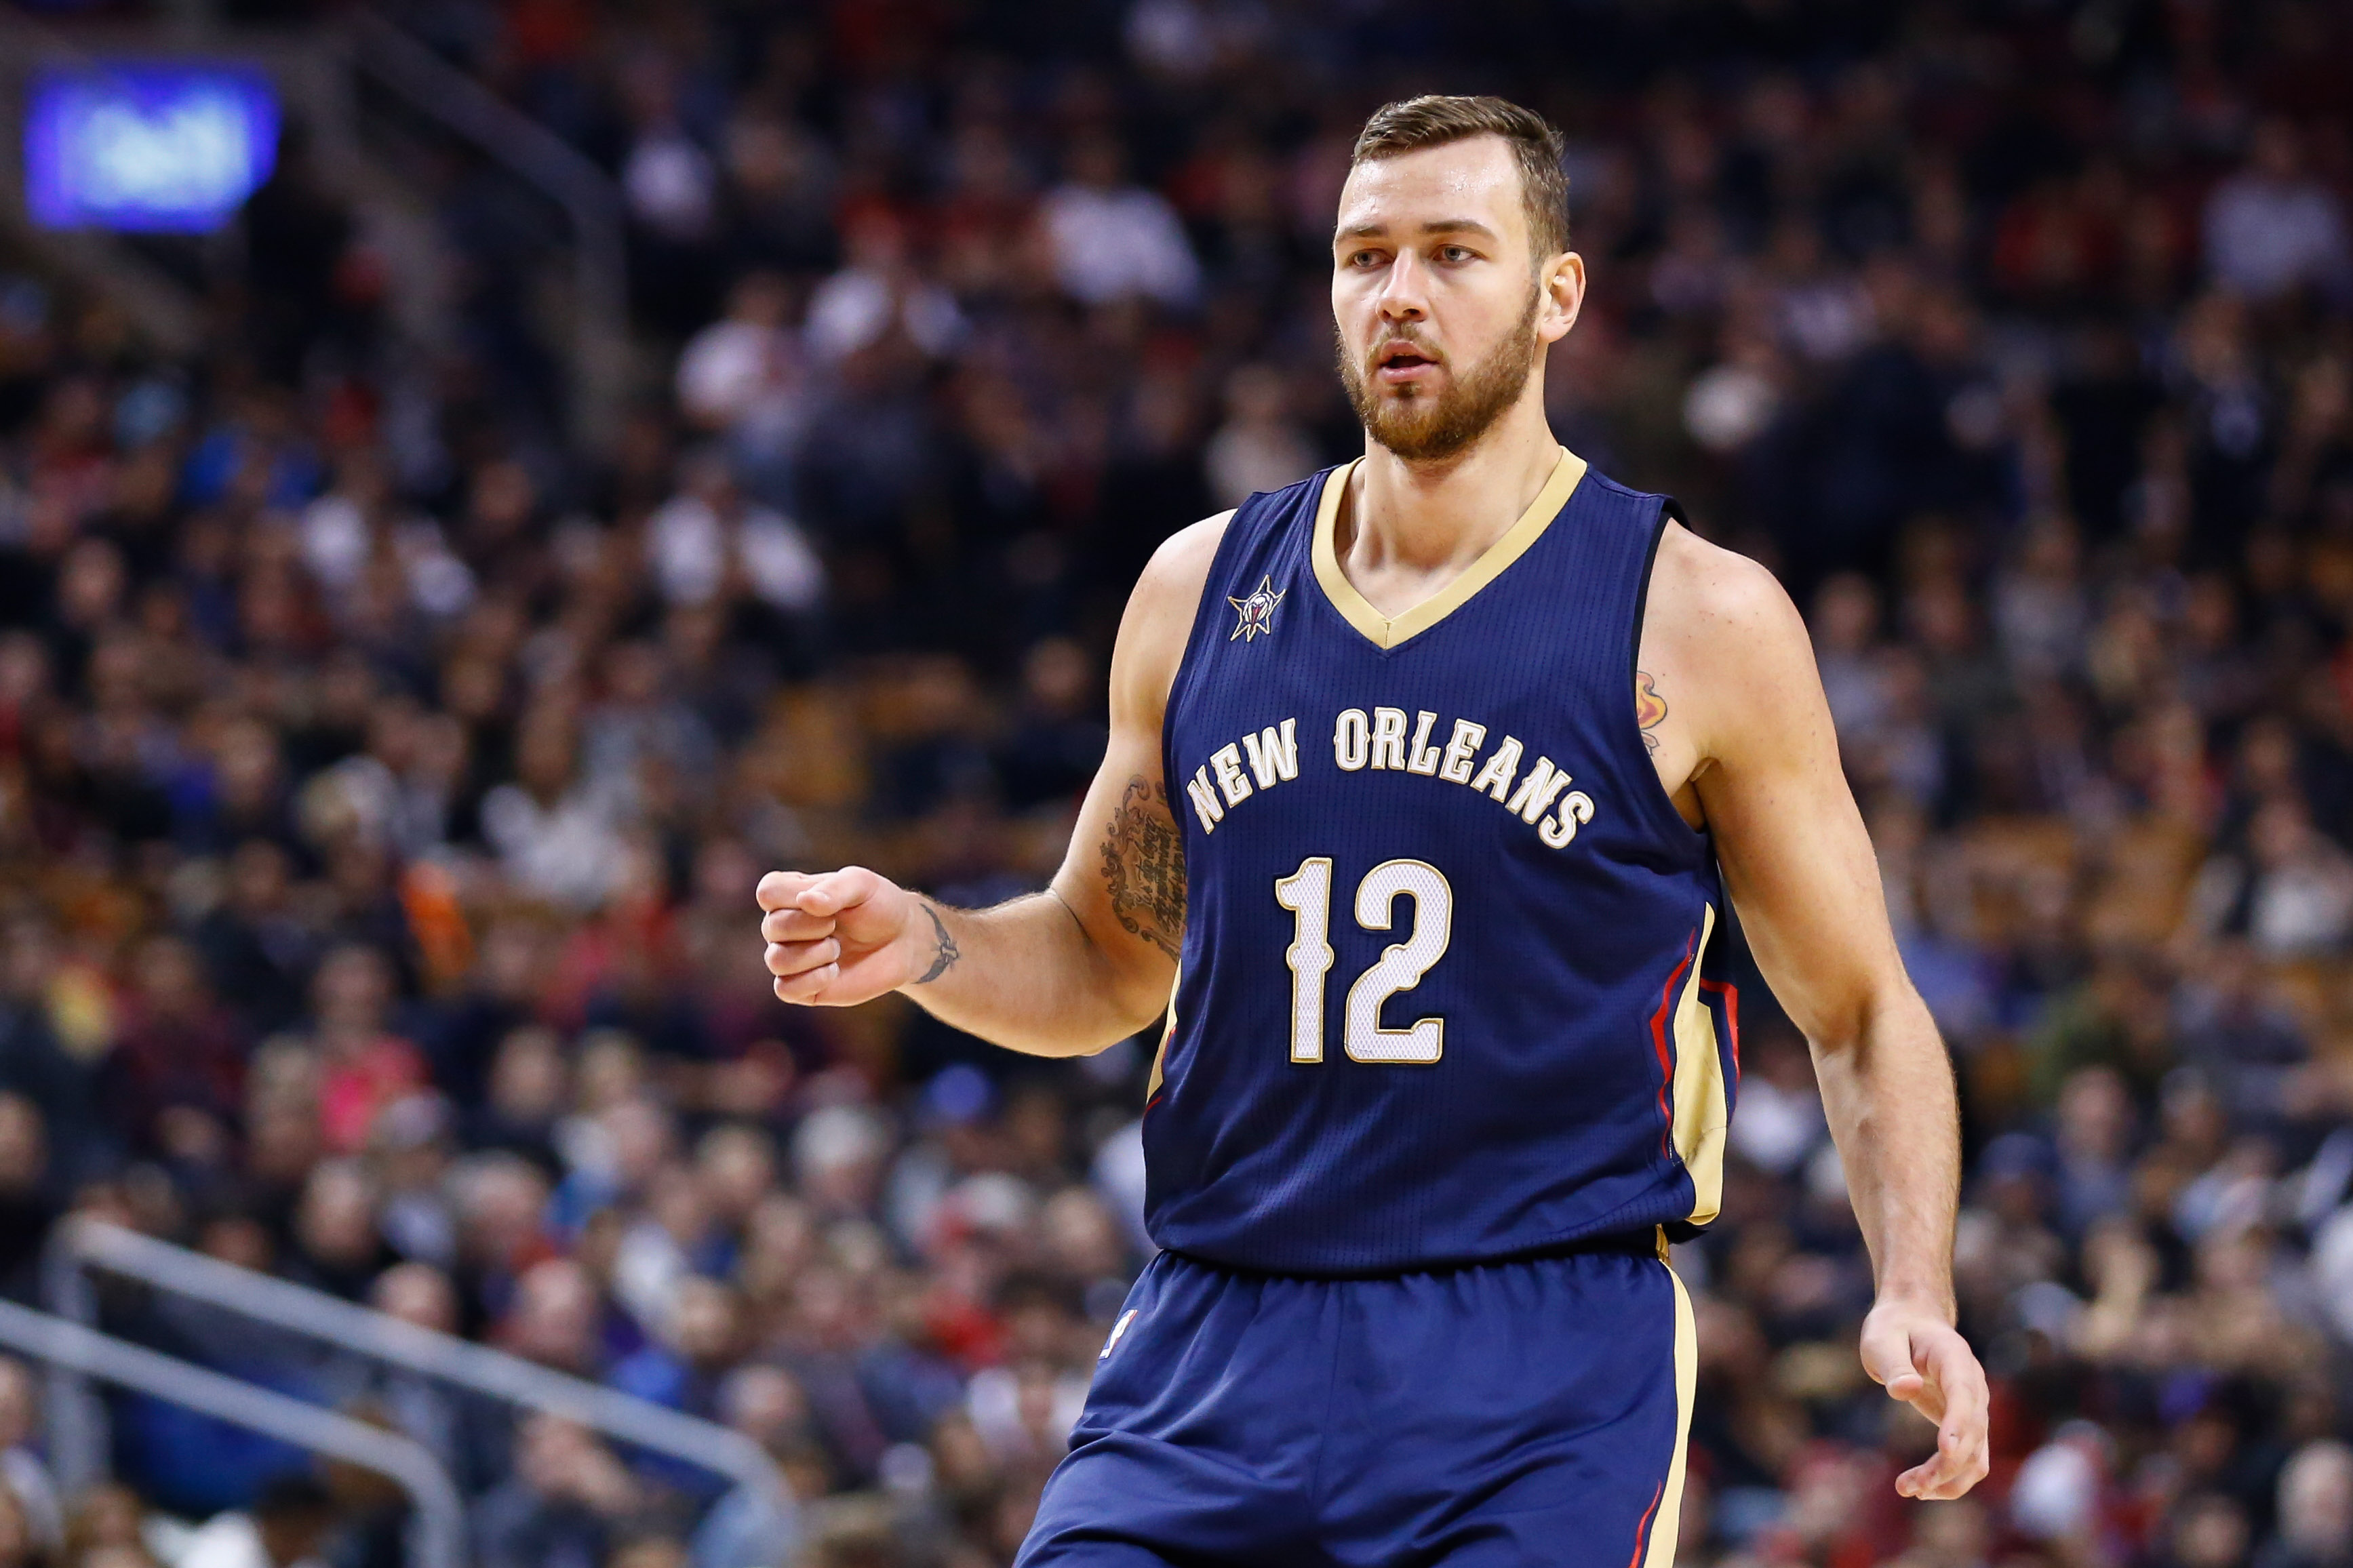 Report: Donatas Motiejunas close to finalizing lawsuit against Houston Rockets, NBA